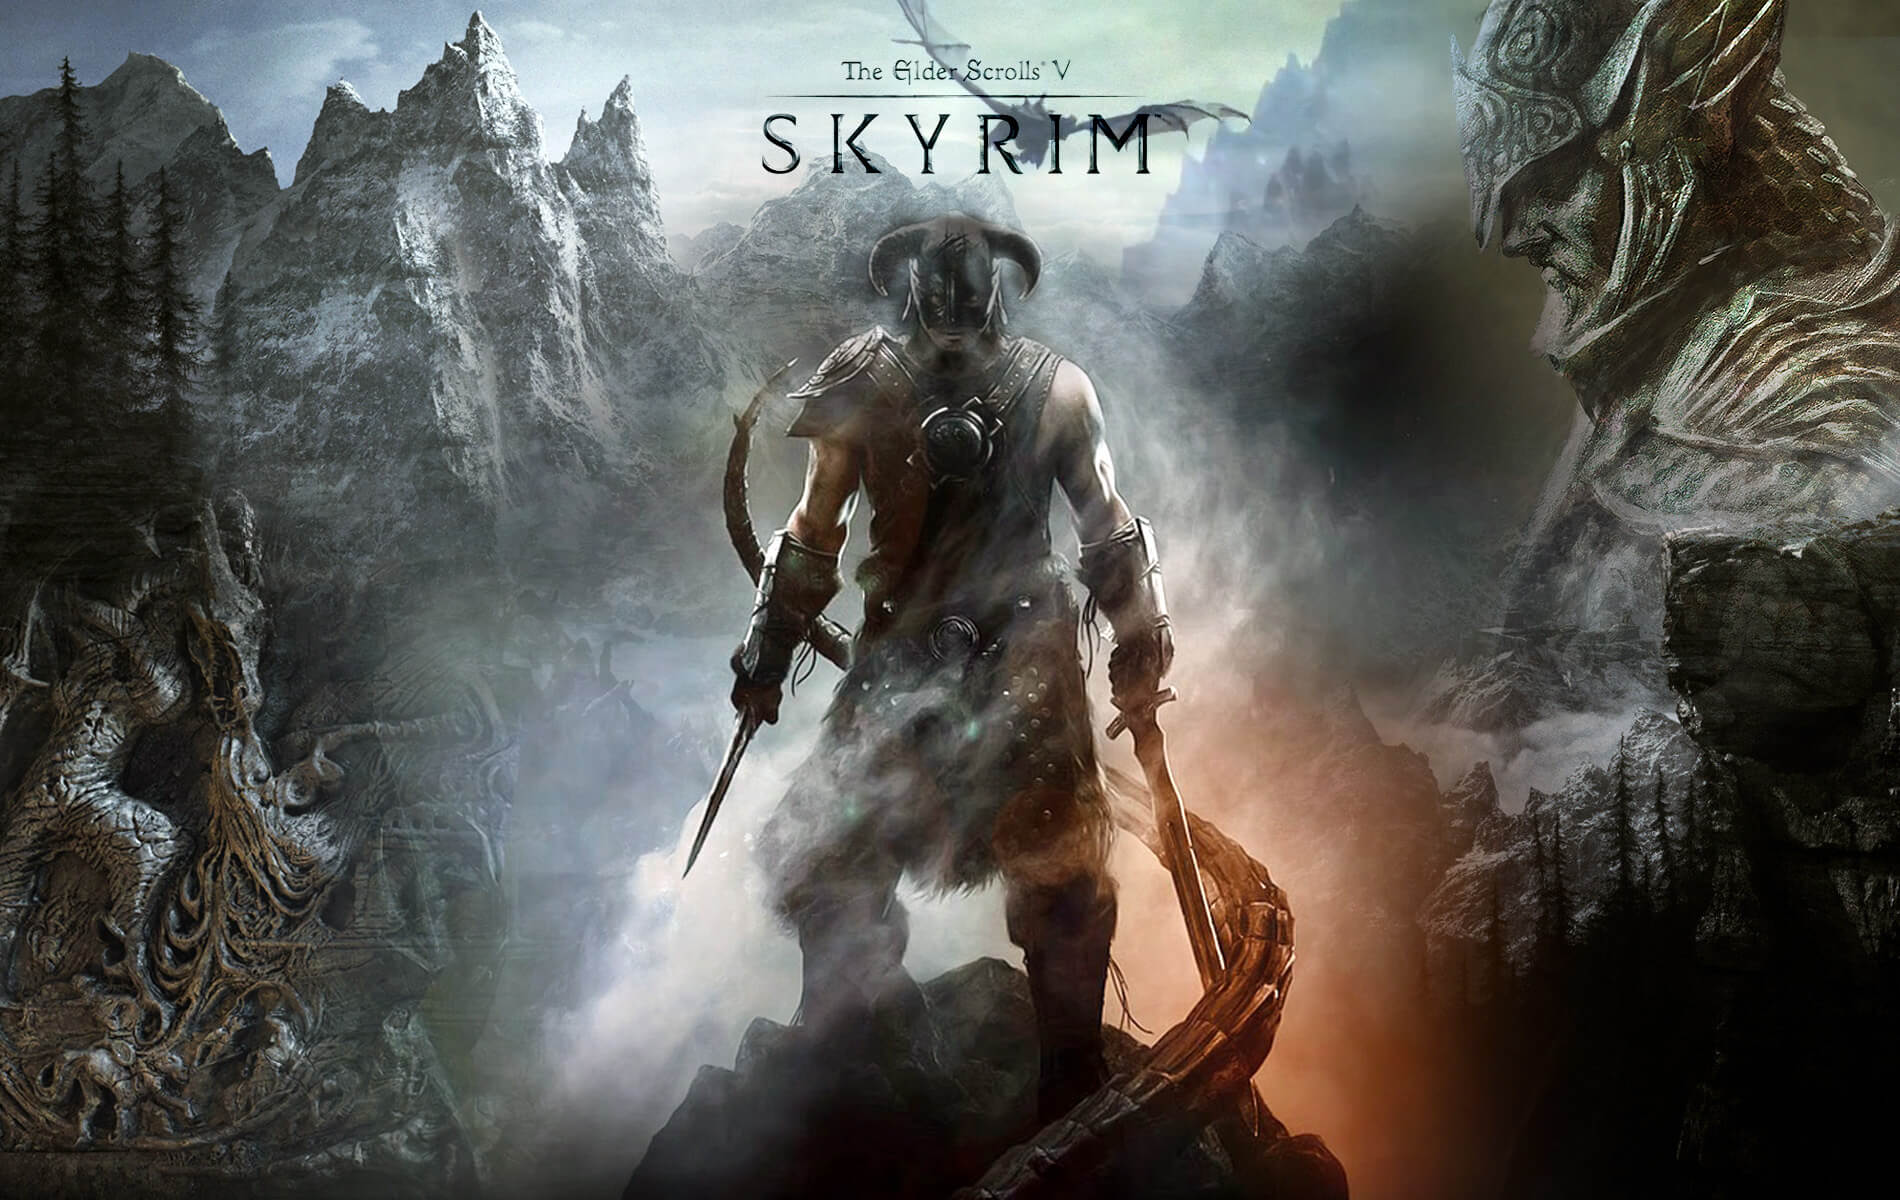 The Elder Scrolls V Skyrim Cheats and Trainers - Video Games